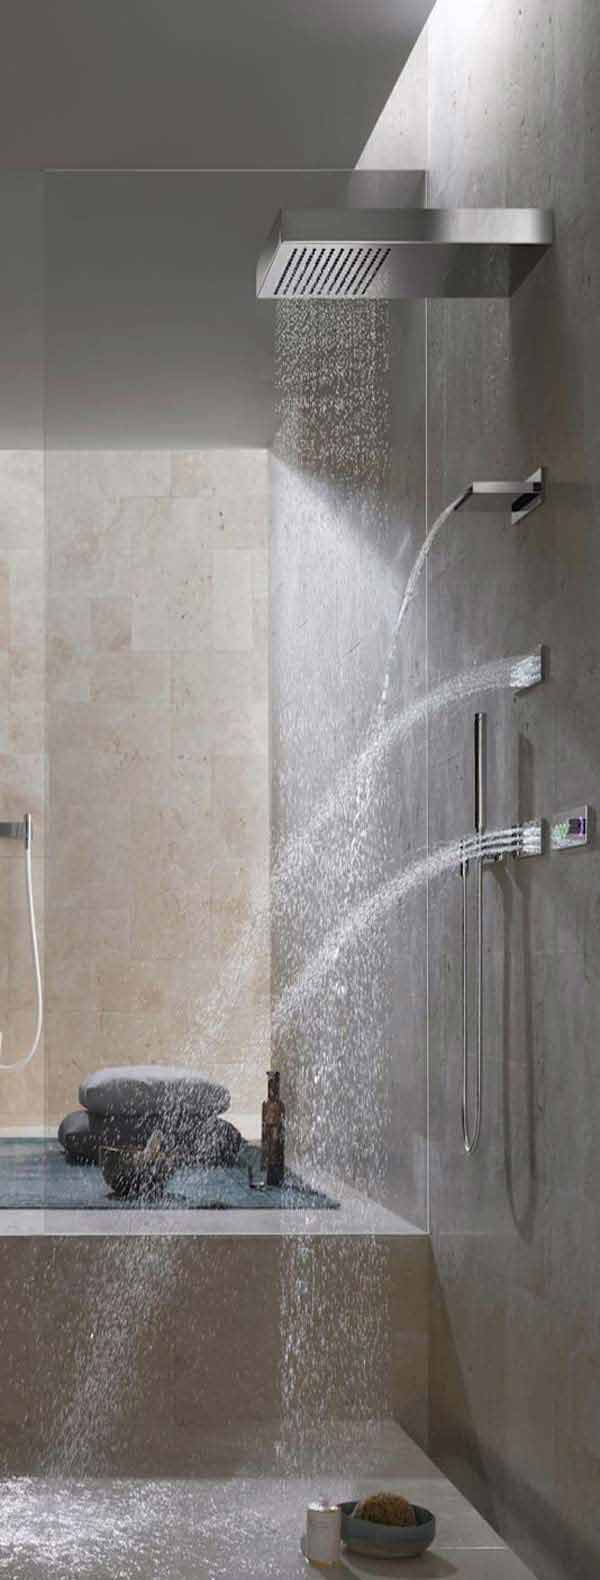 AD-Rain-Showers-Bathroom-Ideas-27